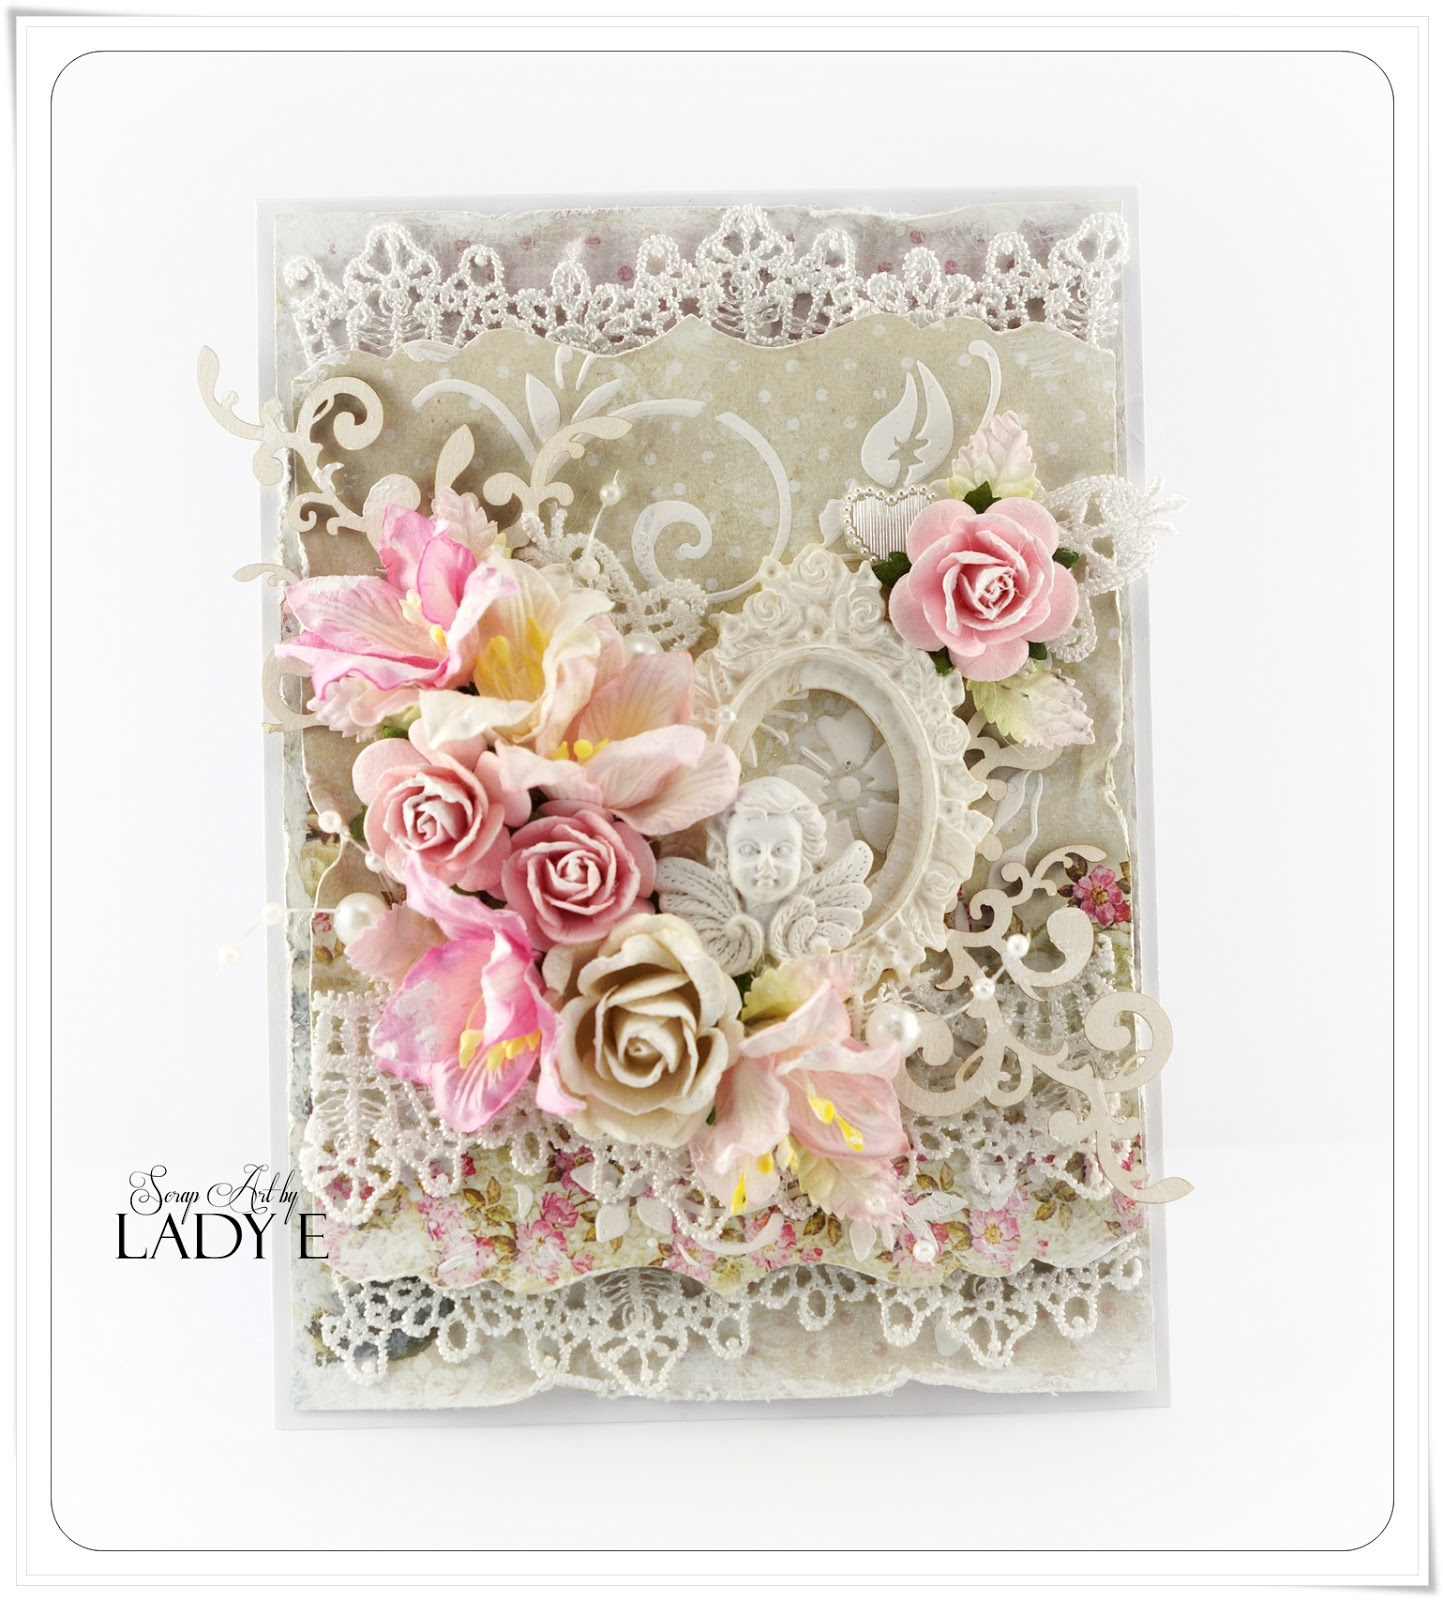 Another Shabby Chic Card